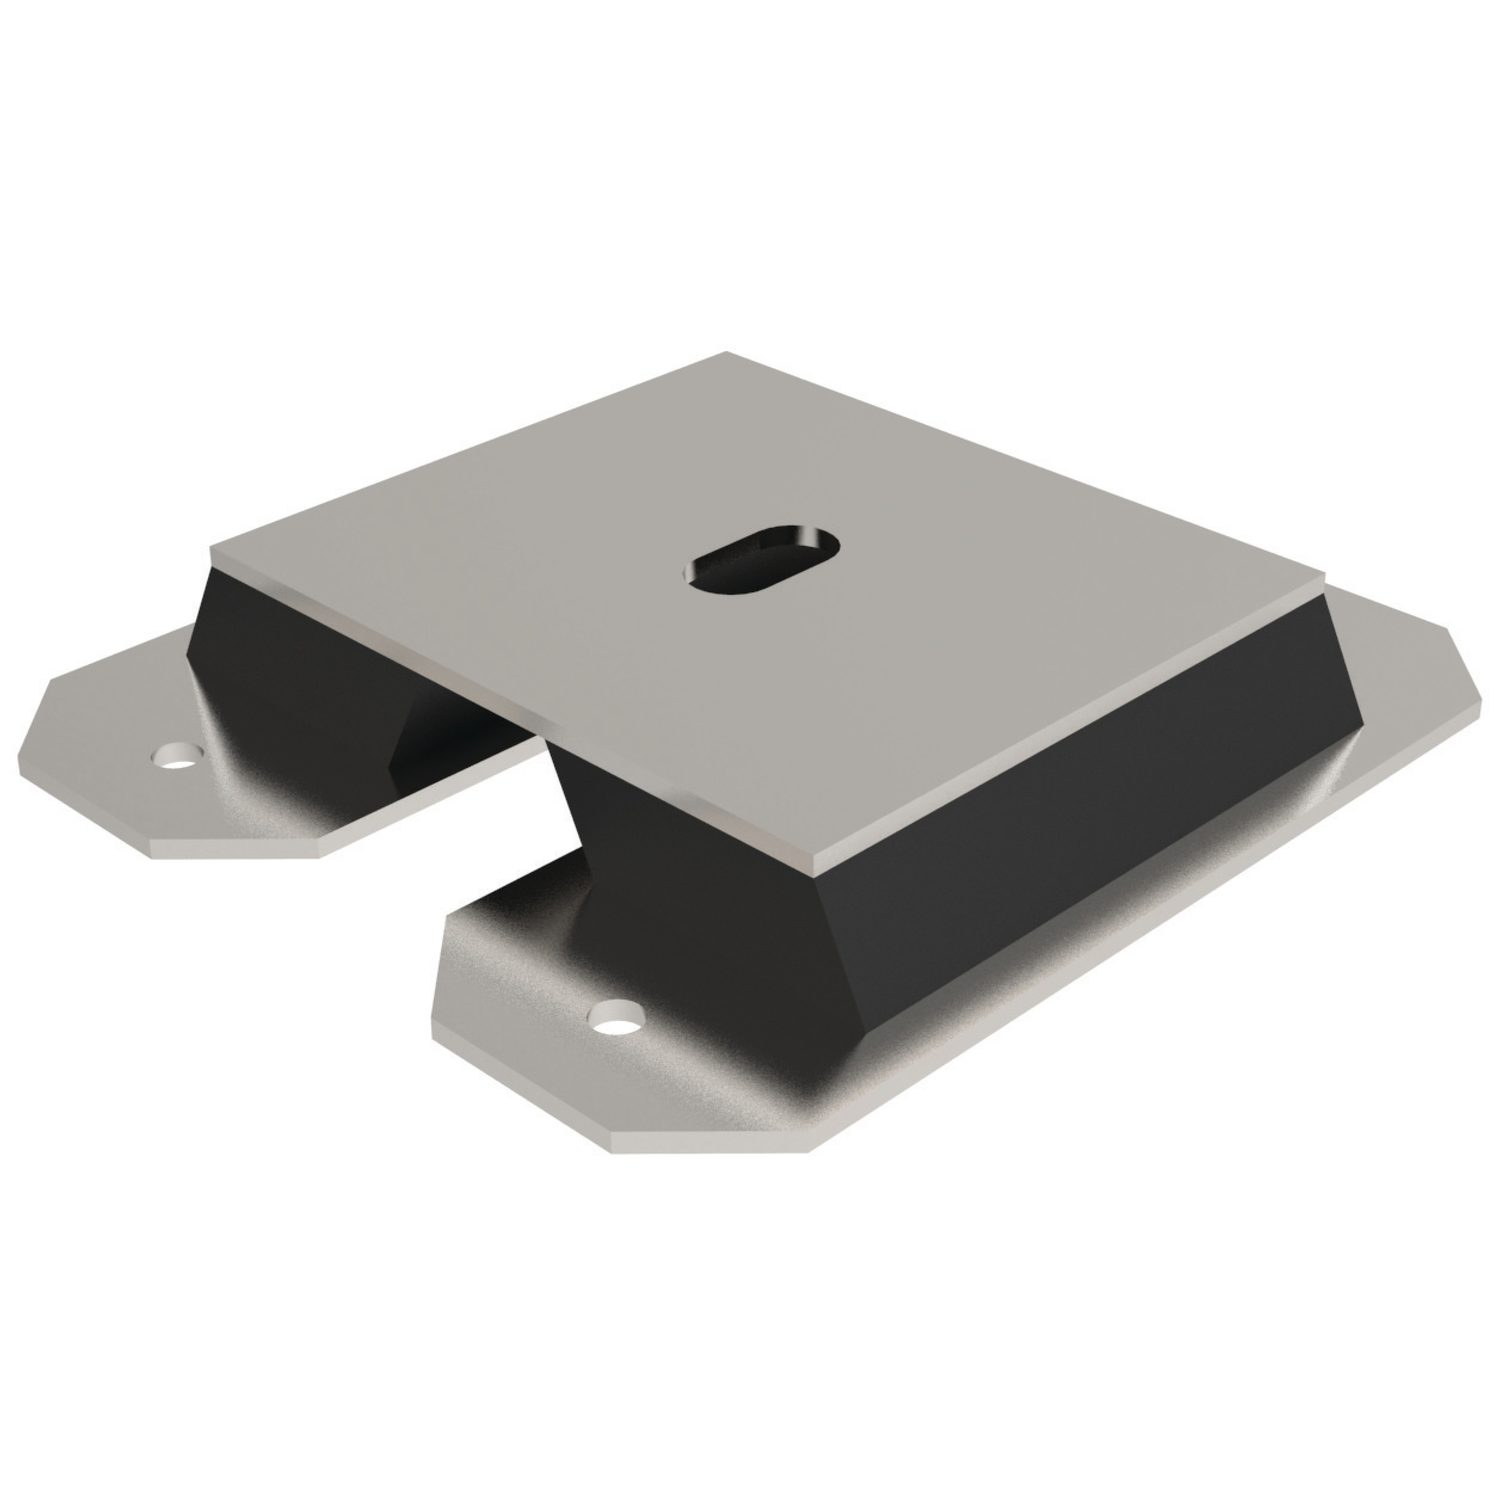 Anti-vibration Mounts Rectangular anti-vibration mounts - Two types available. Used where transverse loads are present.